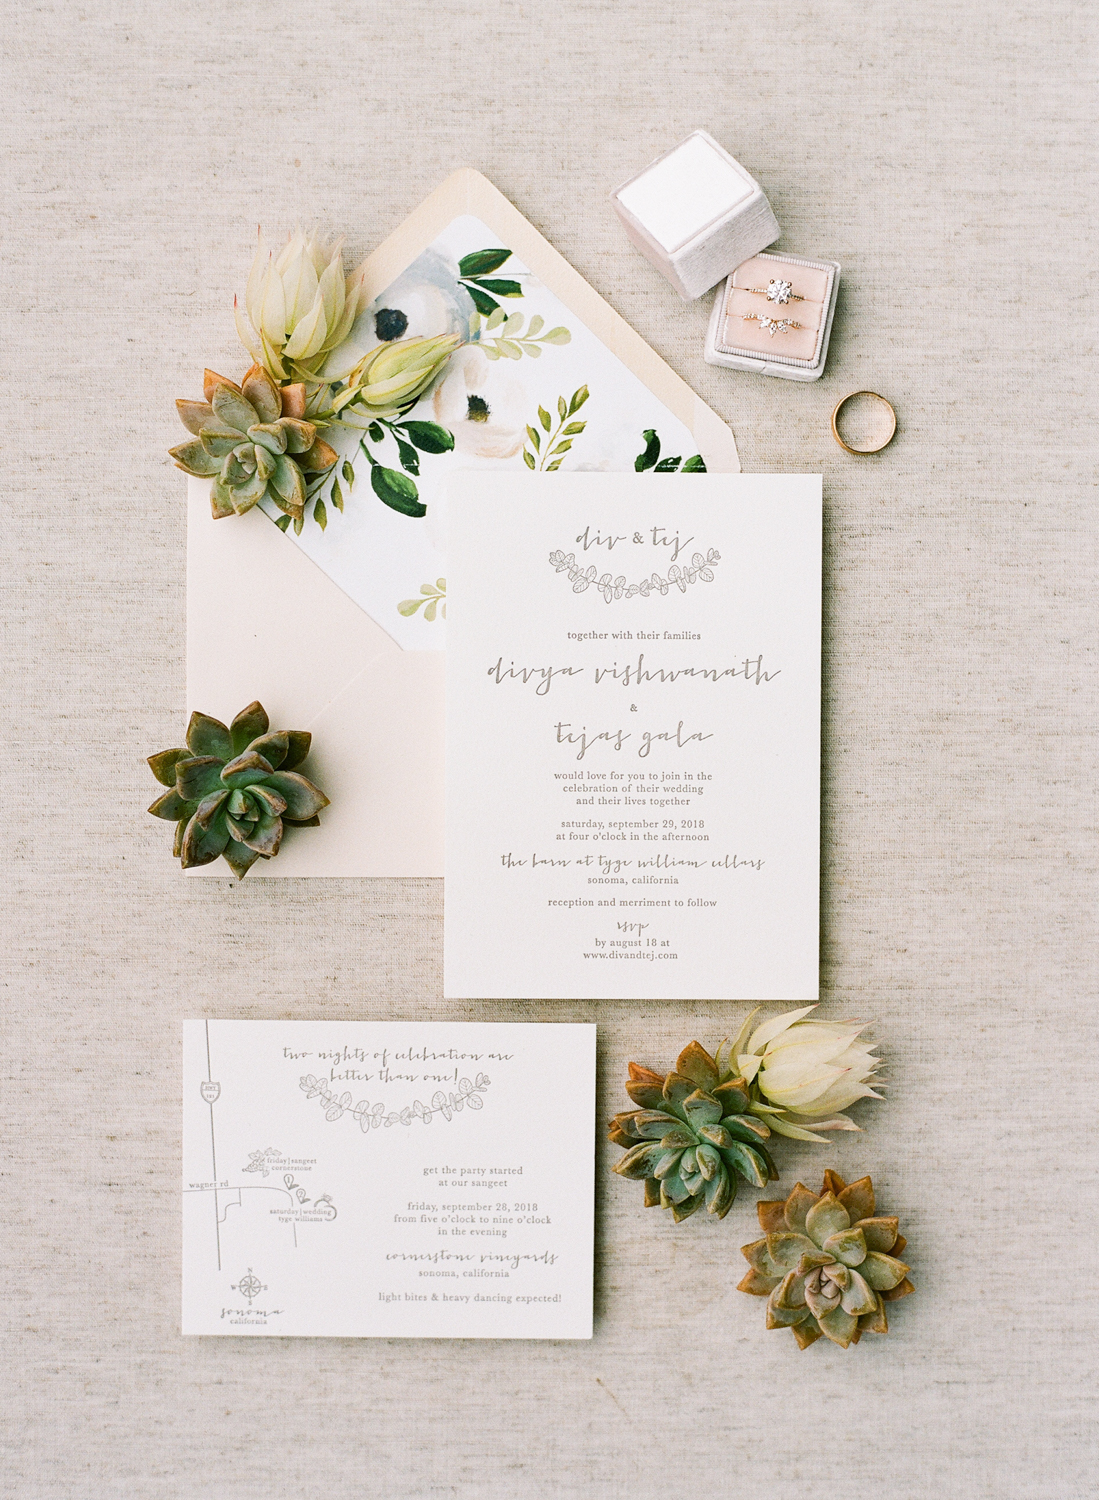 white stationary with letterpressed text and custom eucalyptus wedding logo with watercolored designed blush envelope